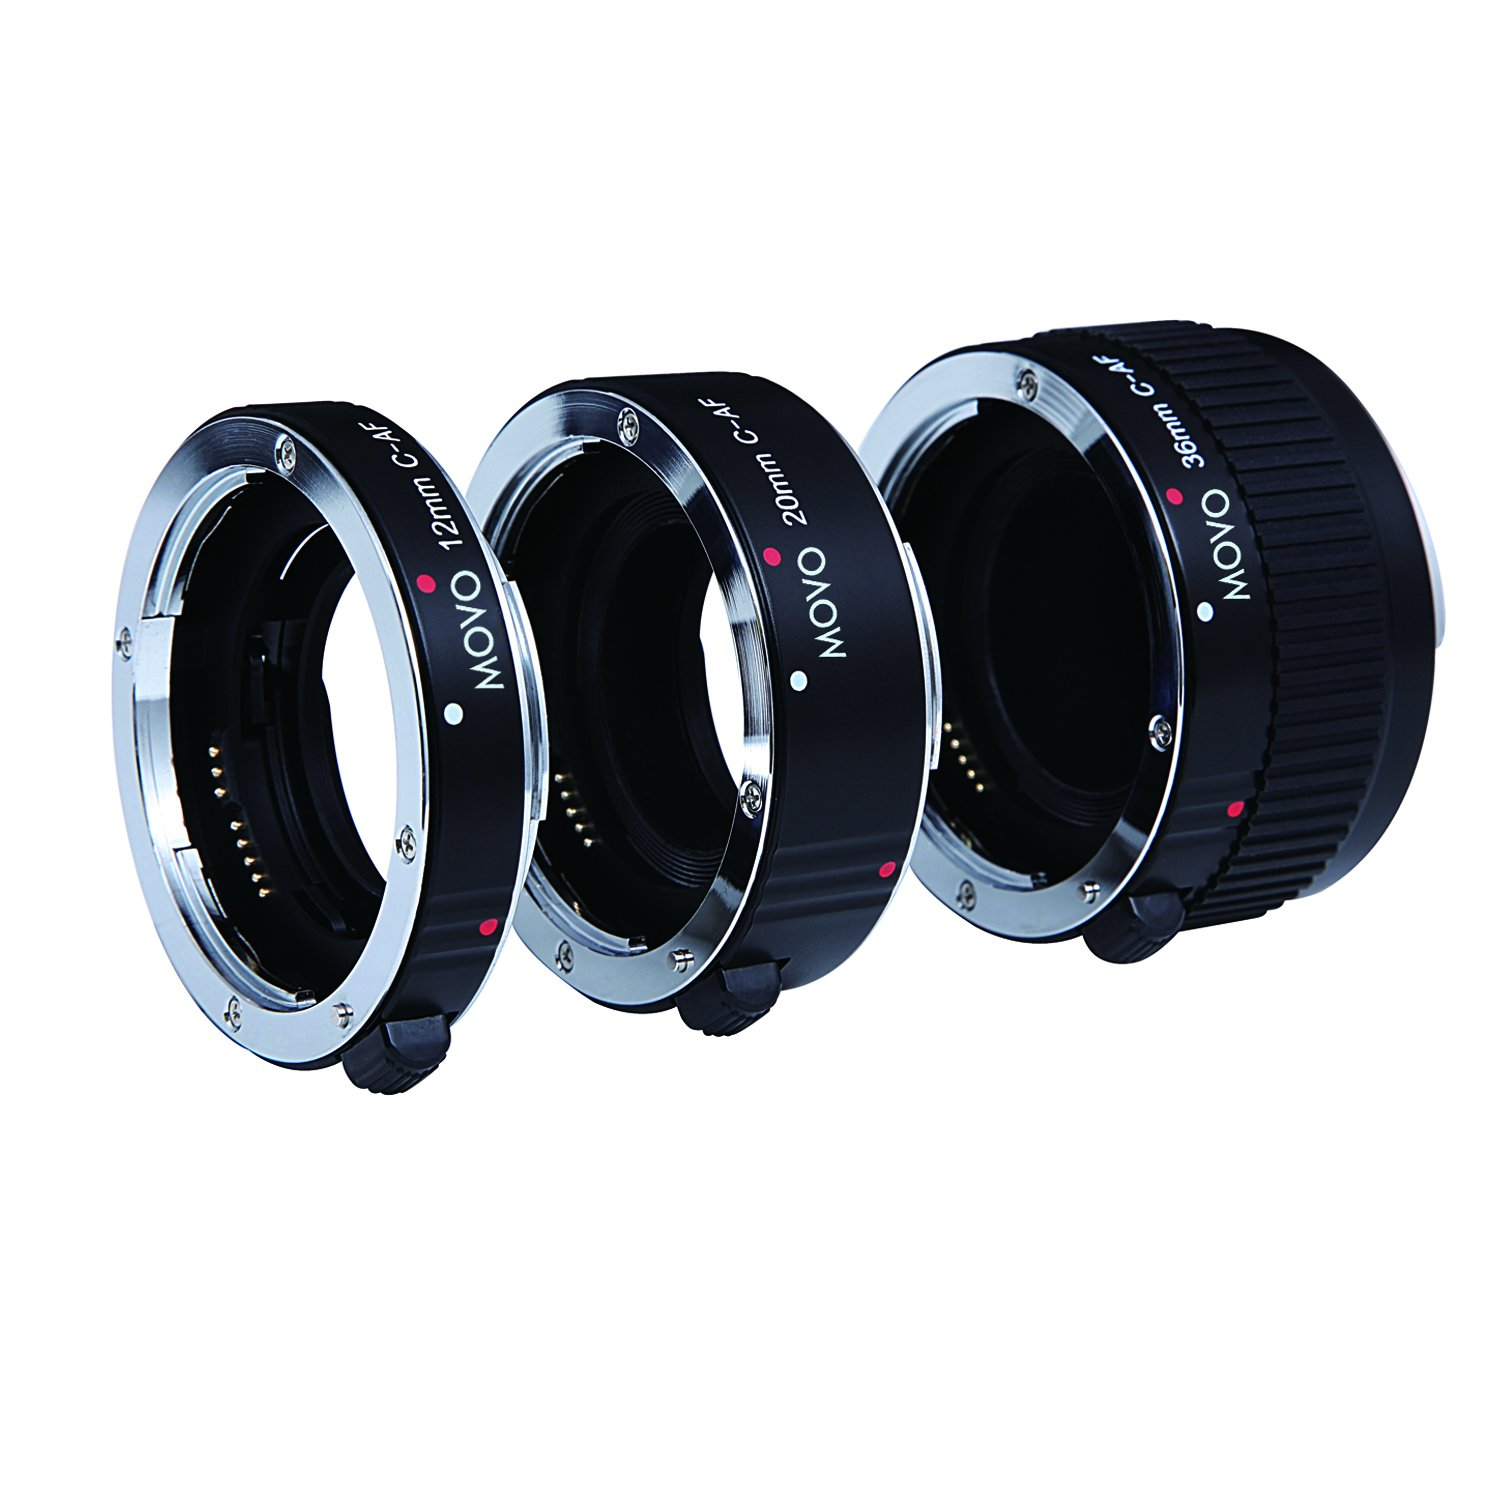 Movo Photo AF Macro Extension Tube Set for Canon EOS DSLR Camera with 12mm, 20mm and 36mm Tubes (Metal Mount) by Movo